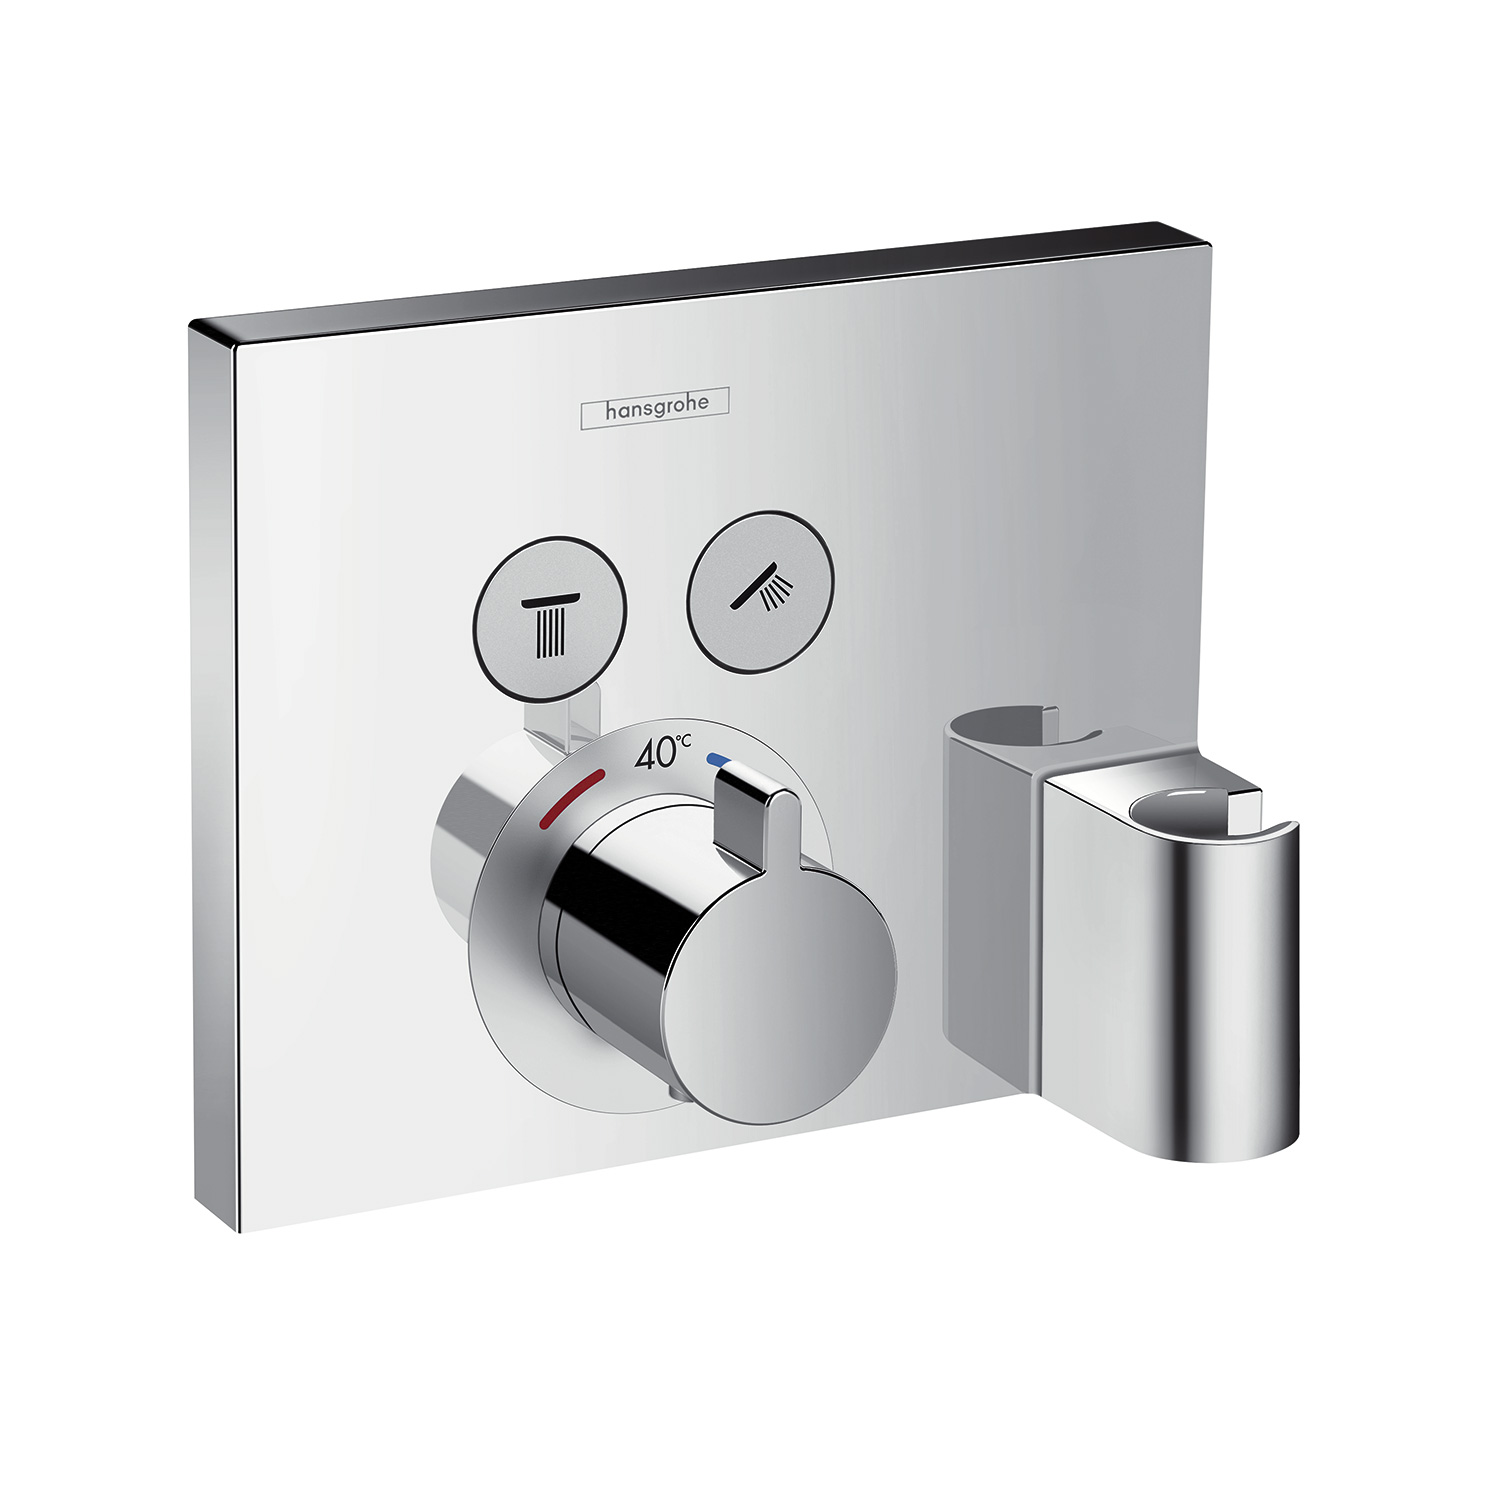 hansgrohe showerselect thermostat unterputz f r 2 verbraucher mit fixfit und portereinheit. Black Bedroom Furniture Sets. Home Design Ideas